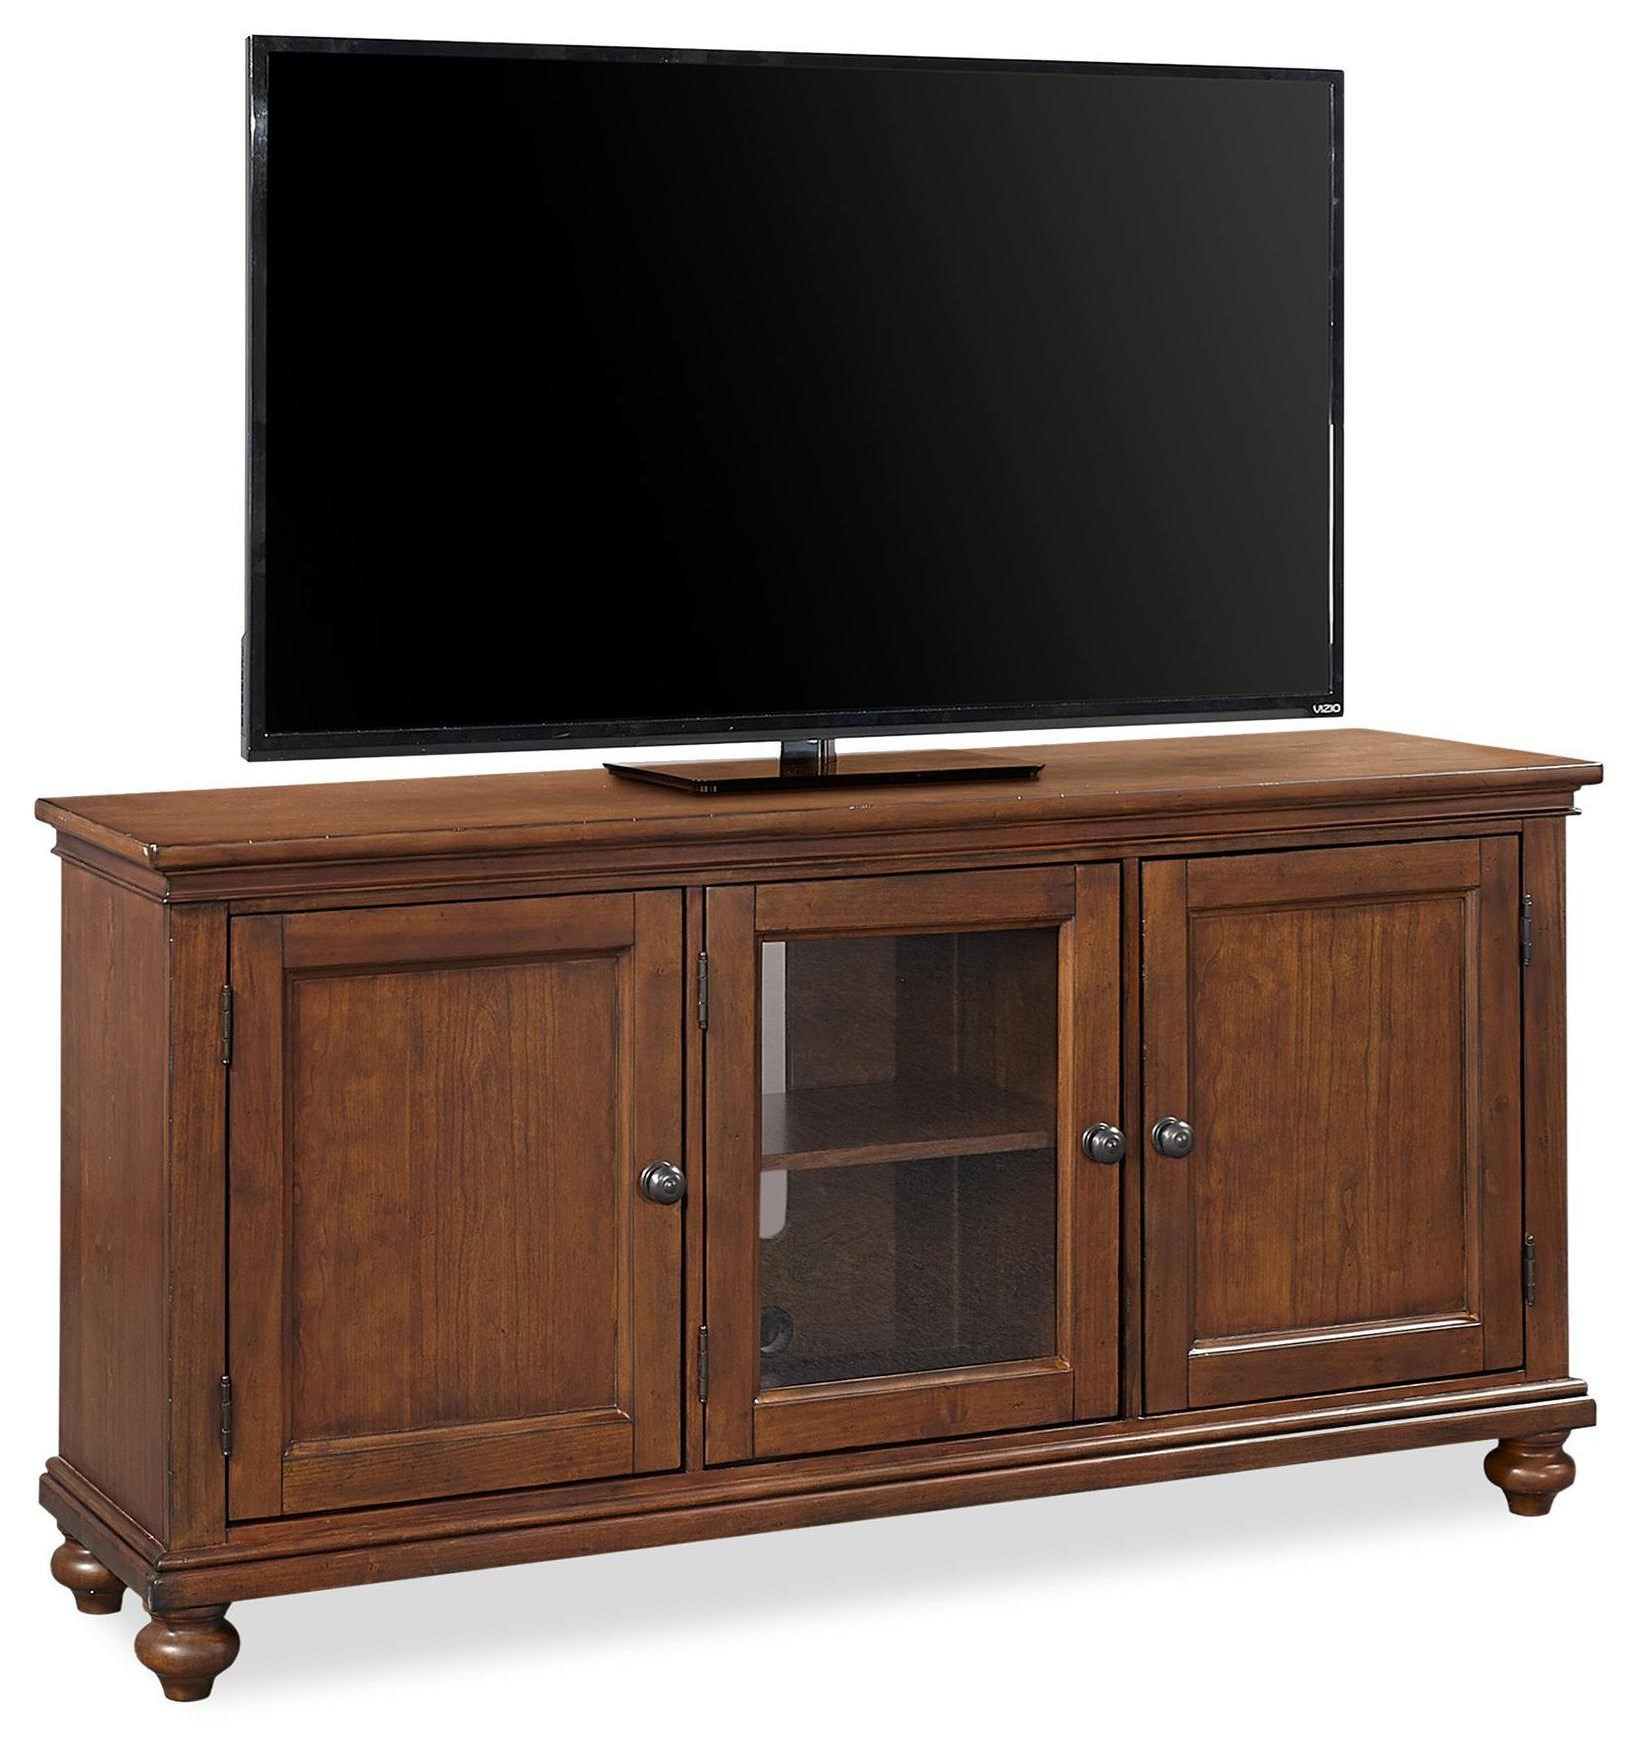 Oxford TV Stand by Aspenhome at HomeWorld Furniture